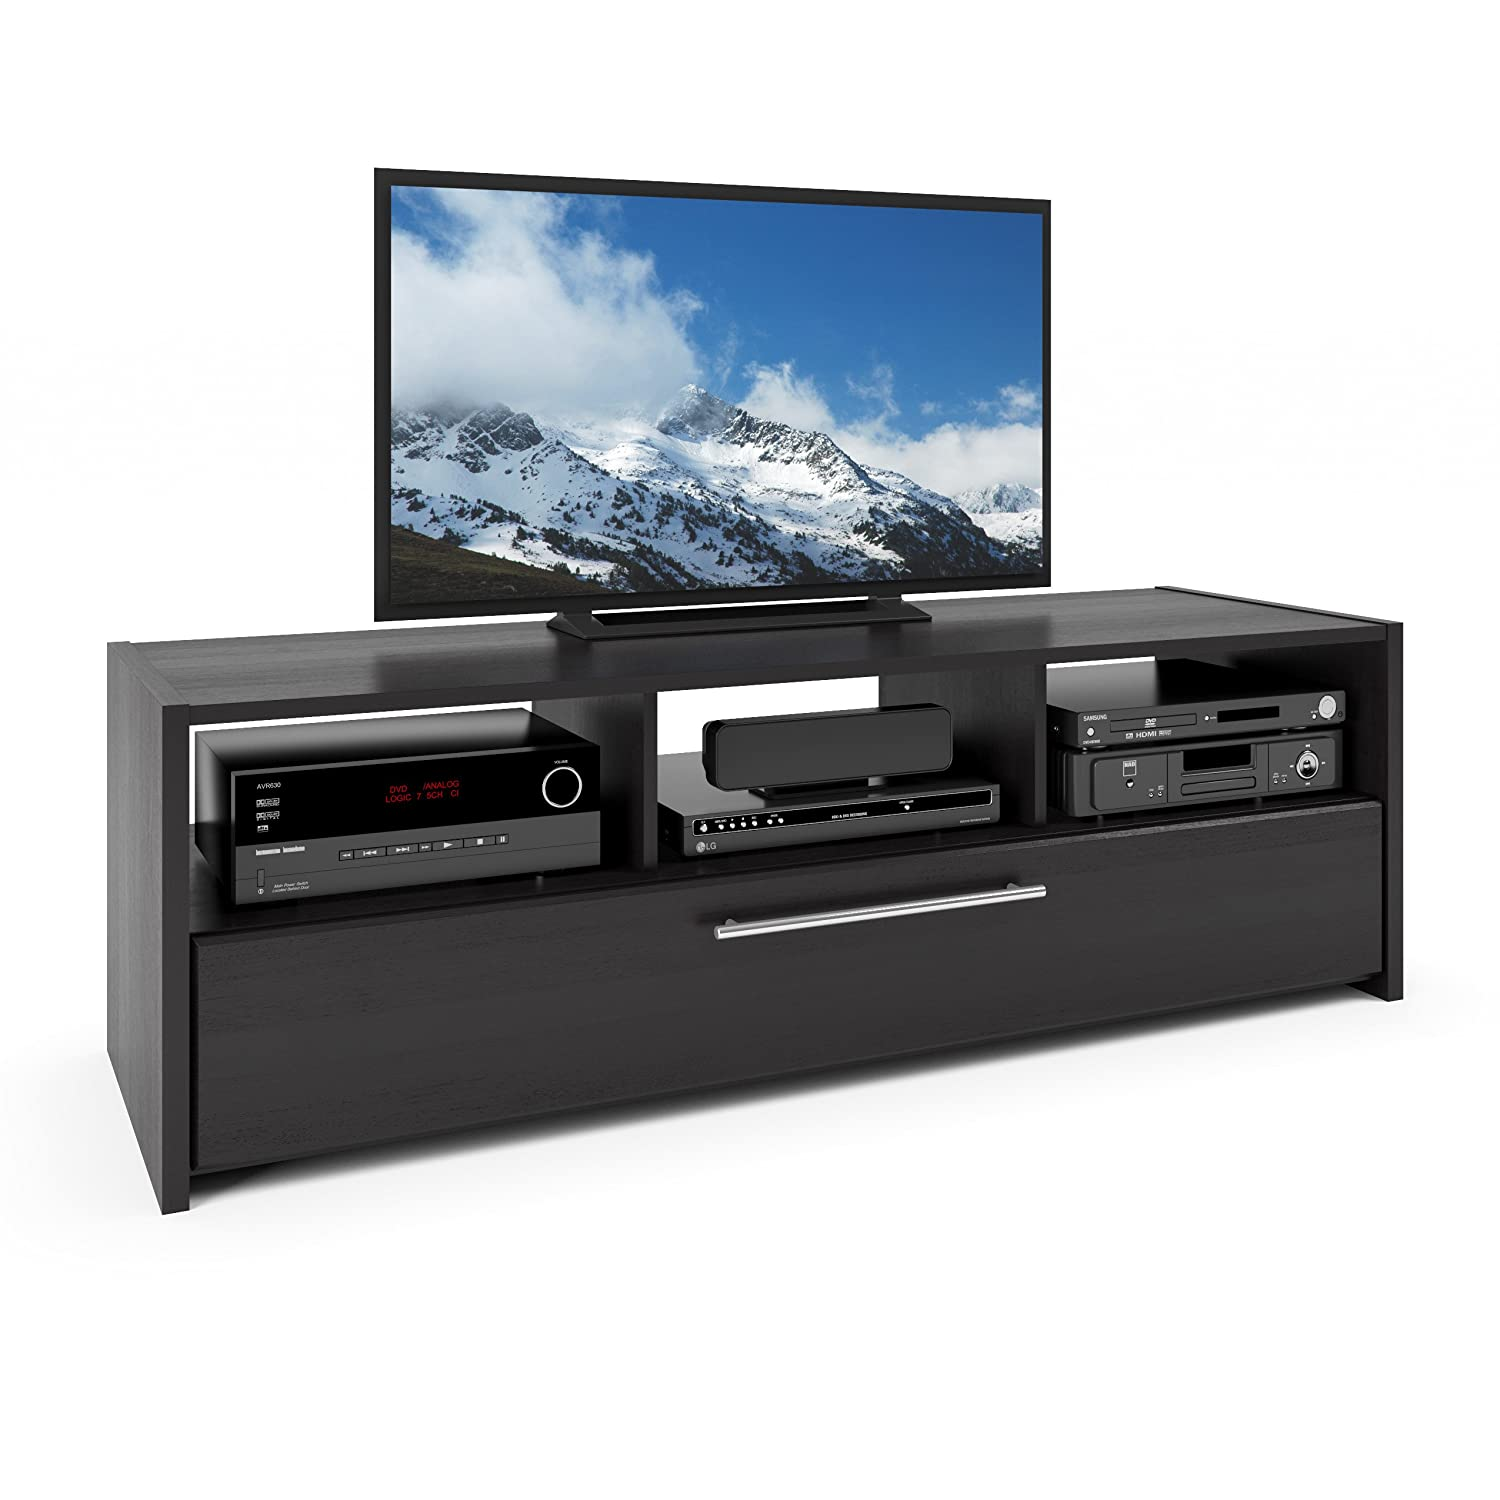 CorLiving TNP-608-B Naples TV/Component Bench in Wood Grain Black Corporate Images